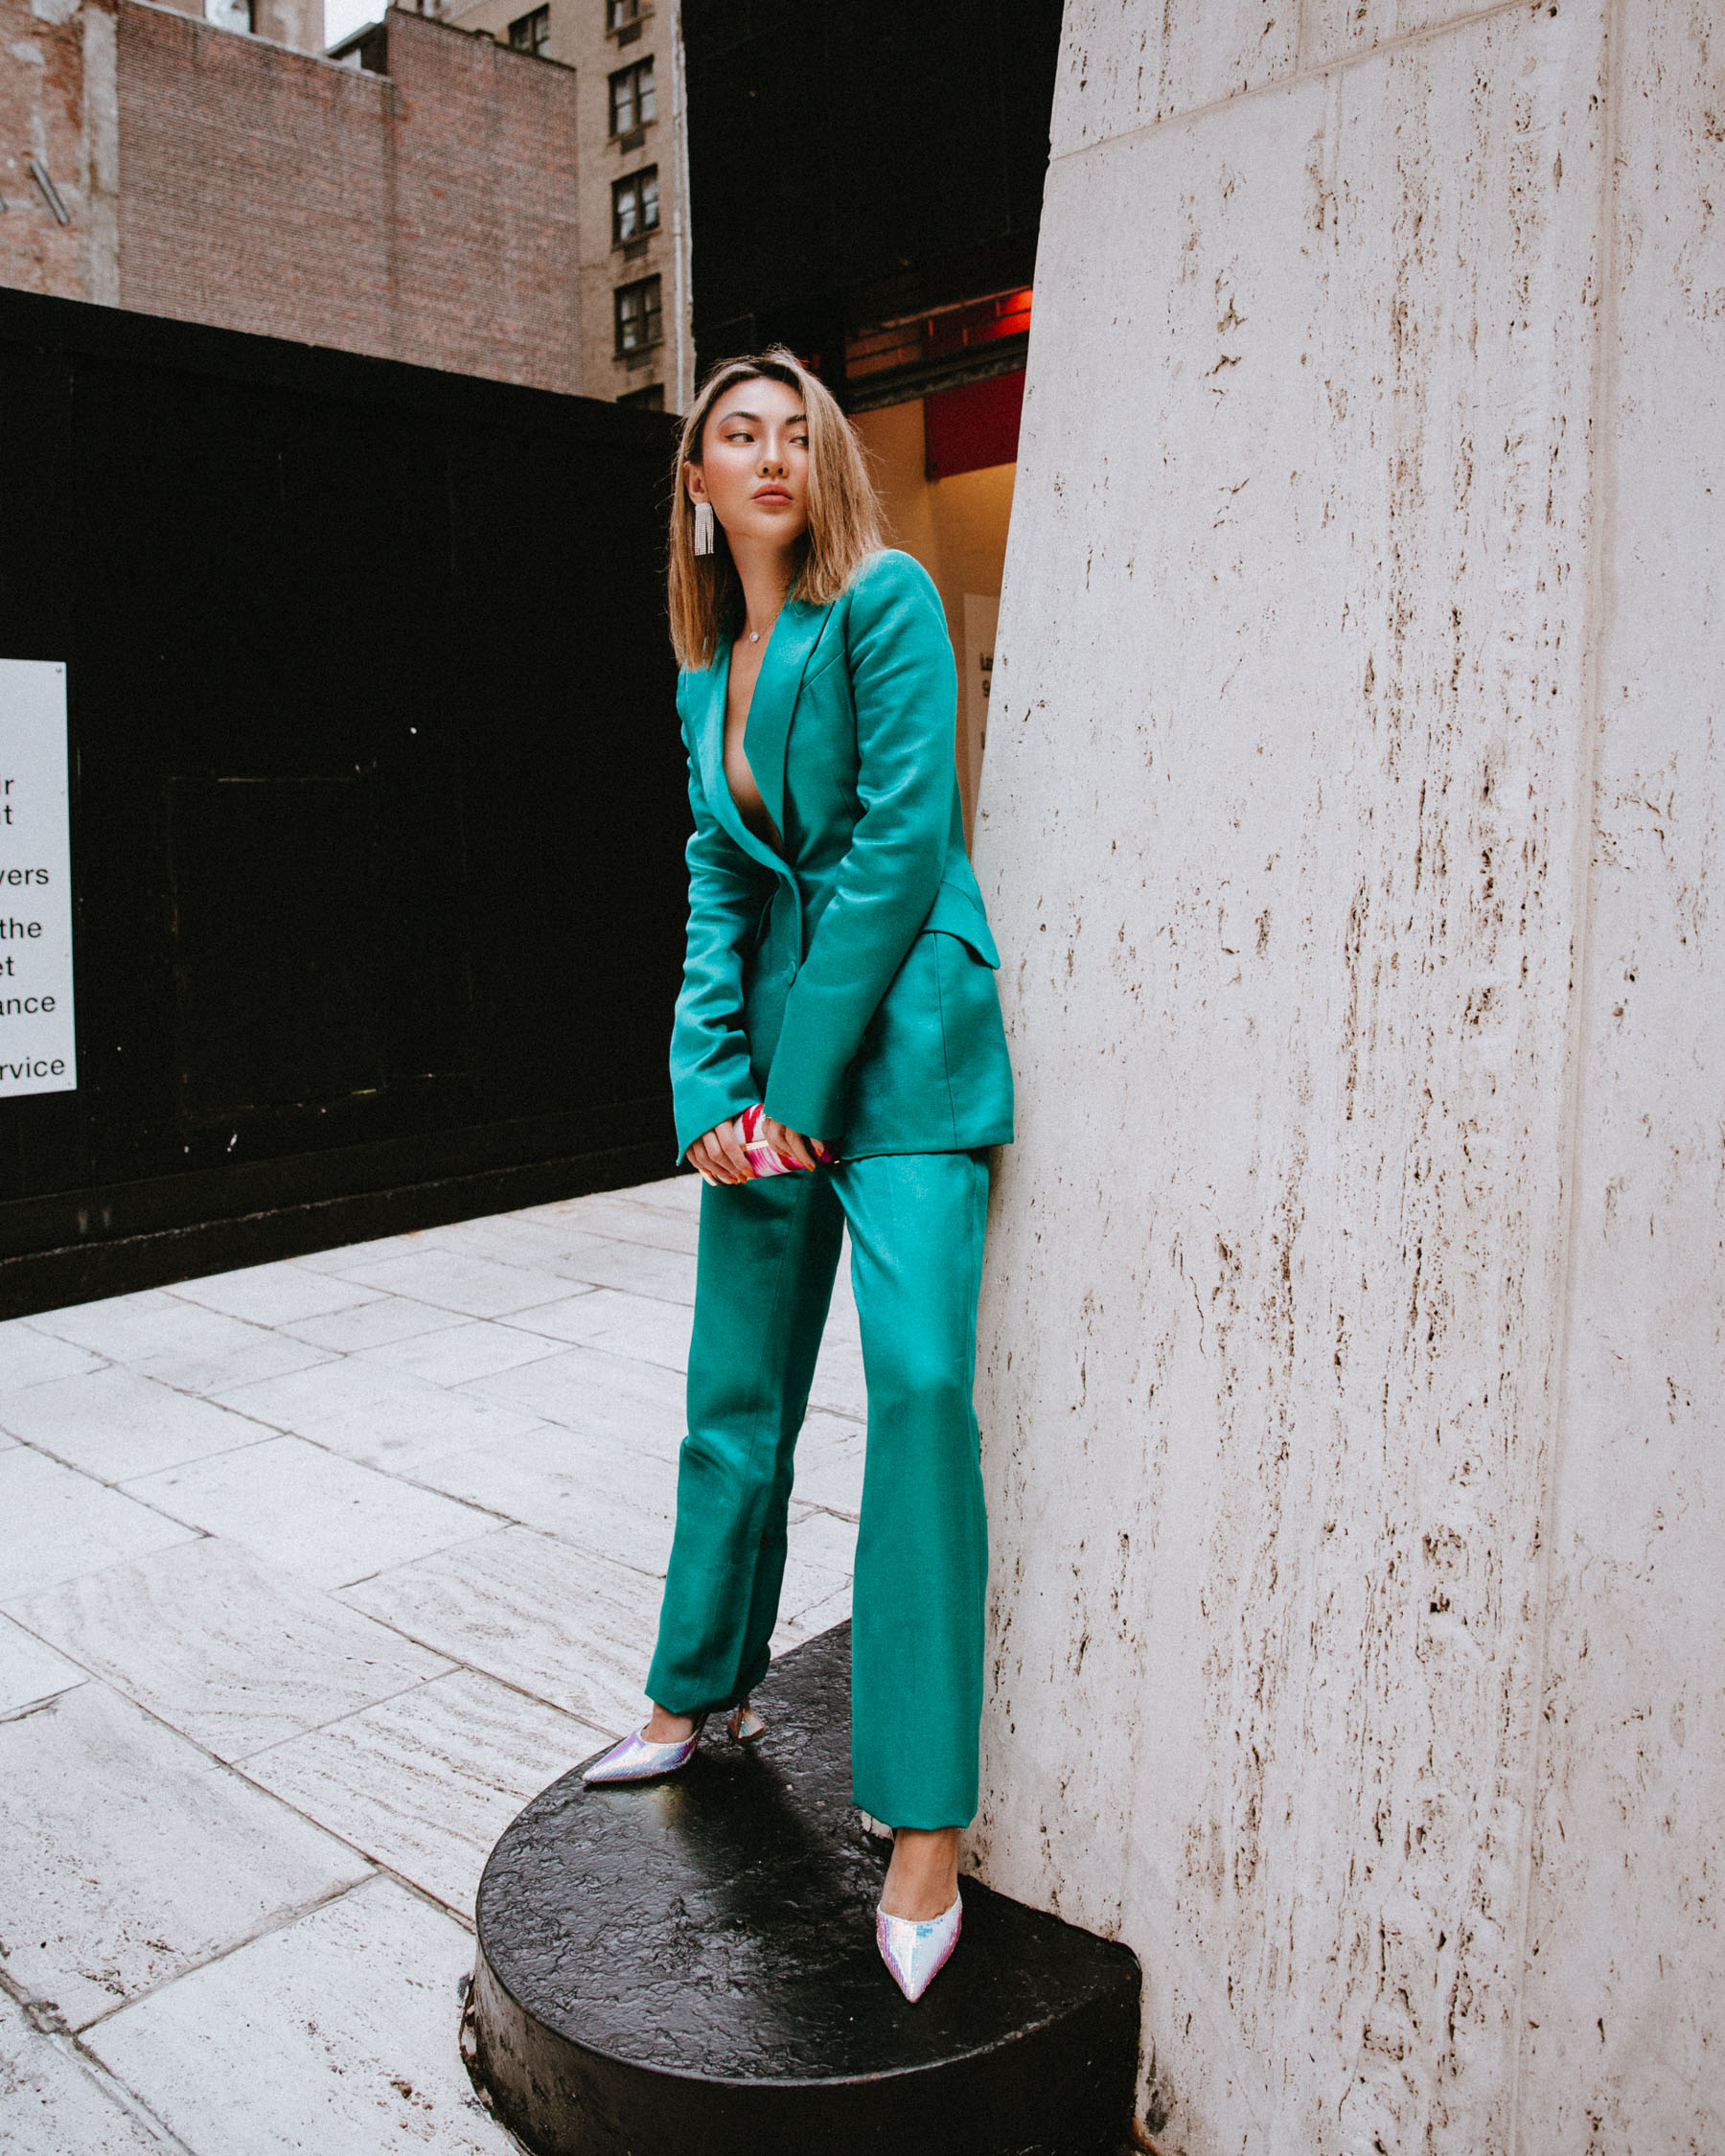 future of fashion week, fashion week street style, green suit, carolina herrera suit // Notjessfashion.com